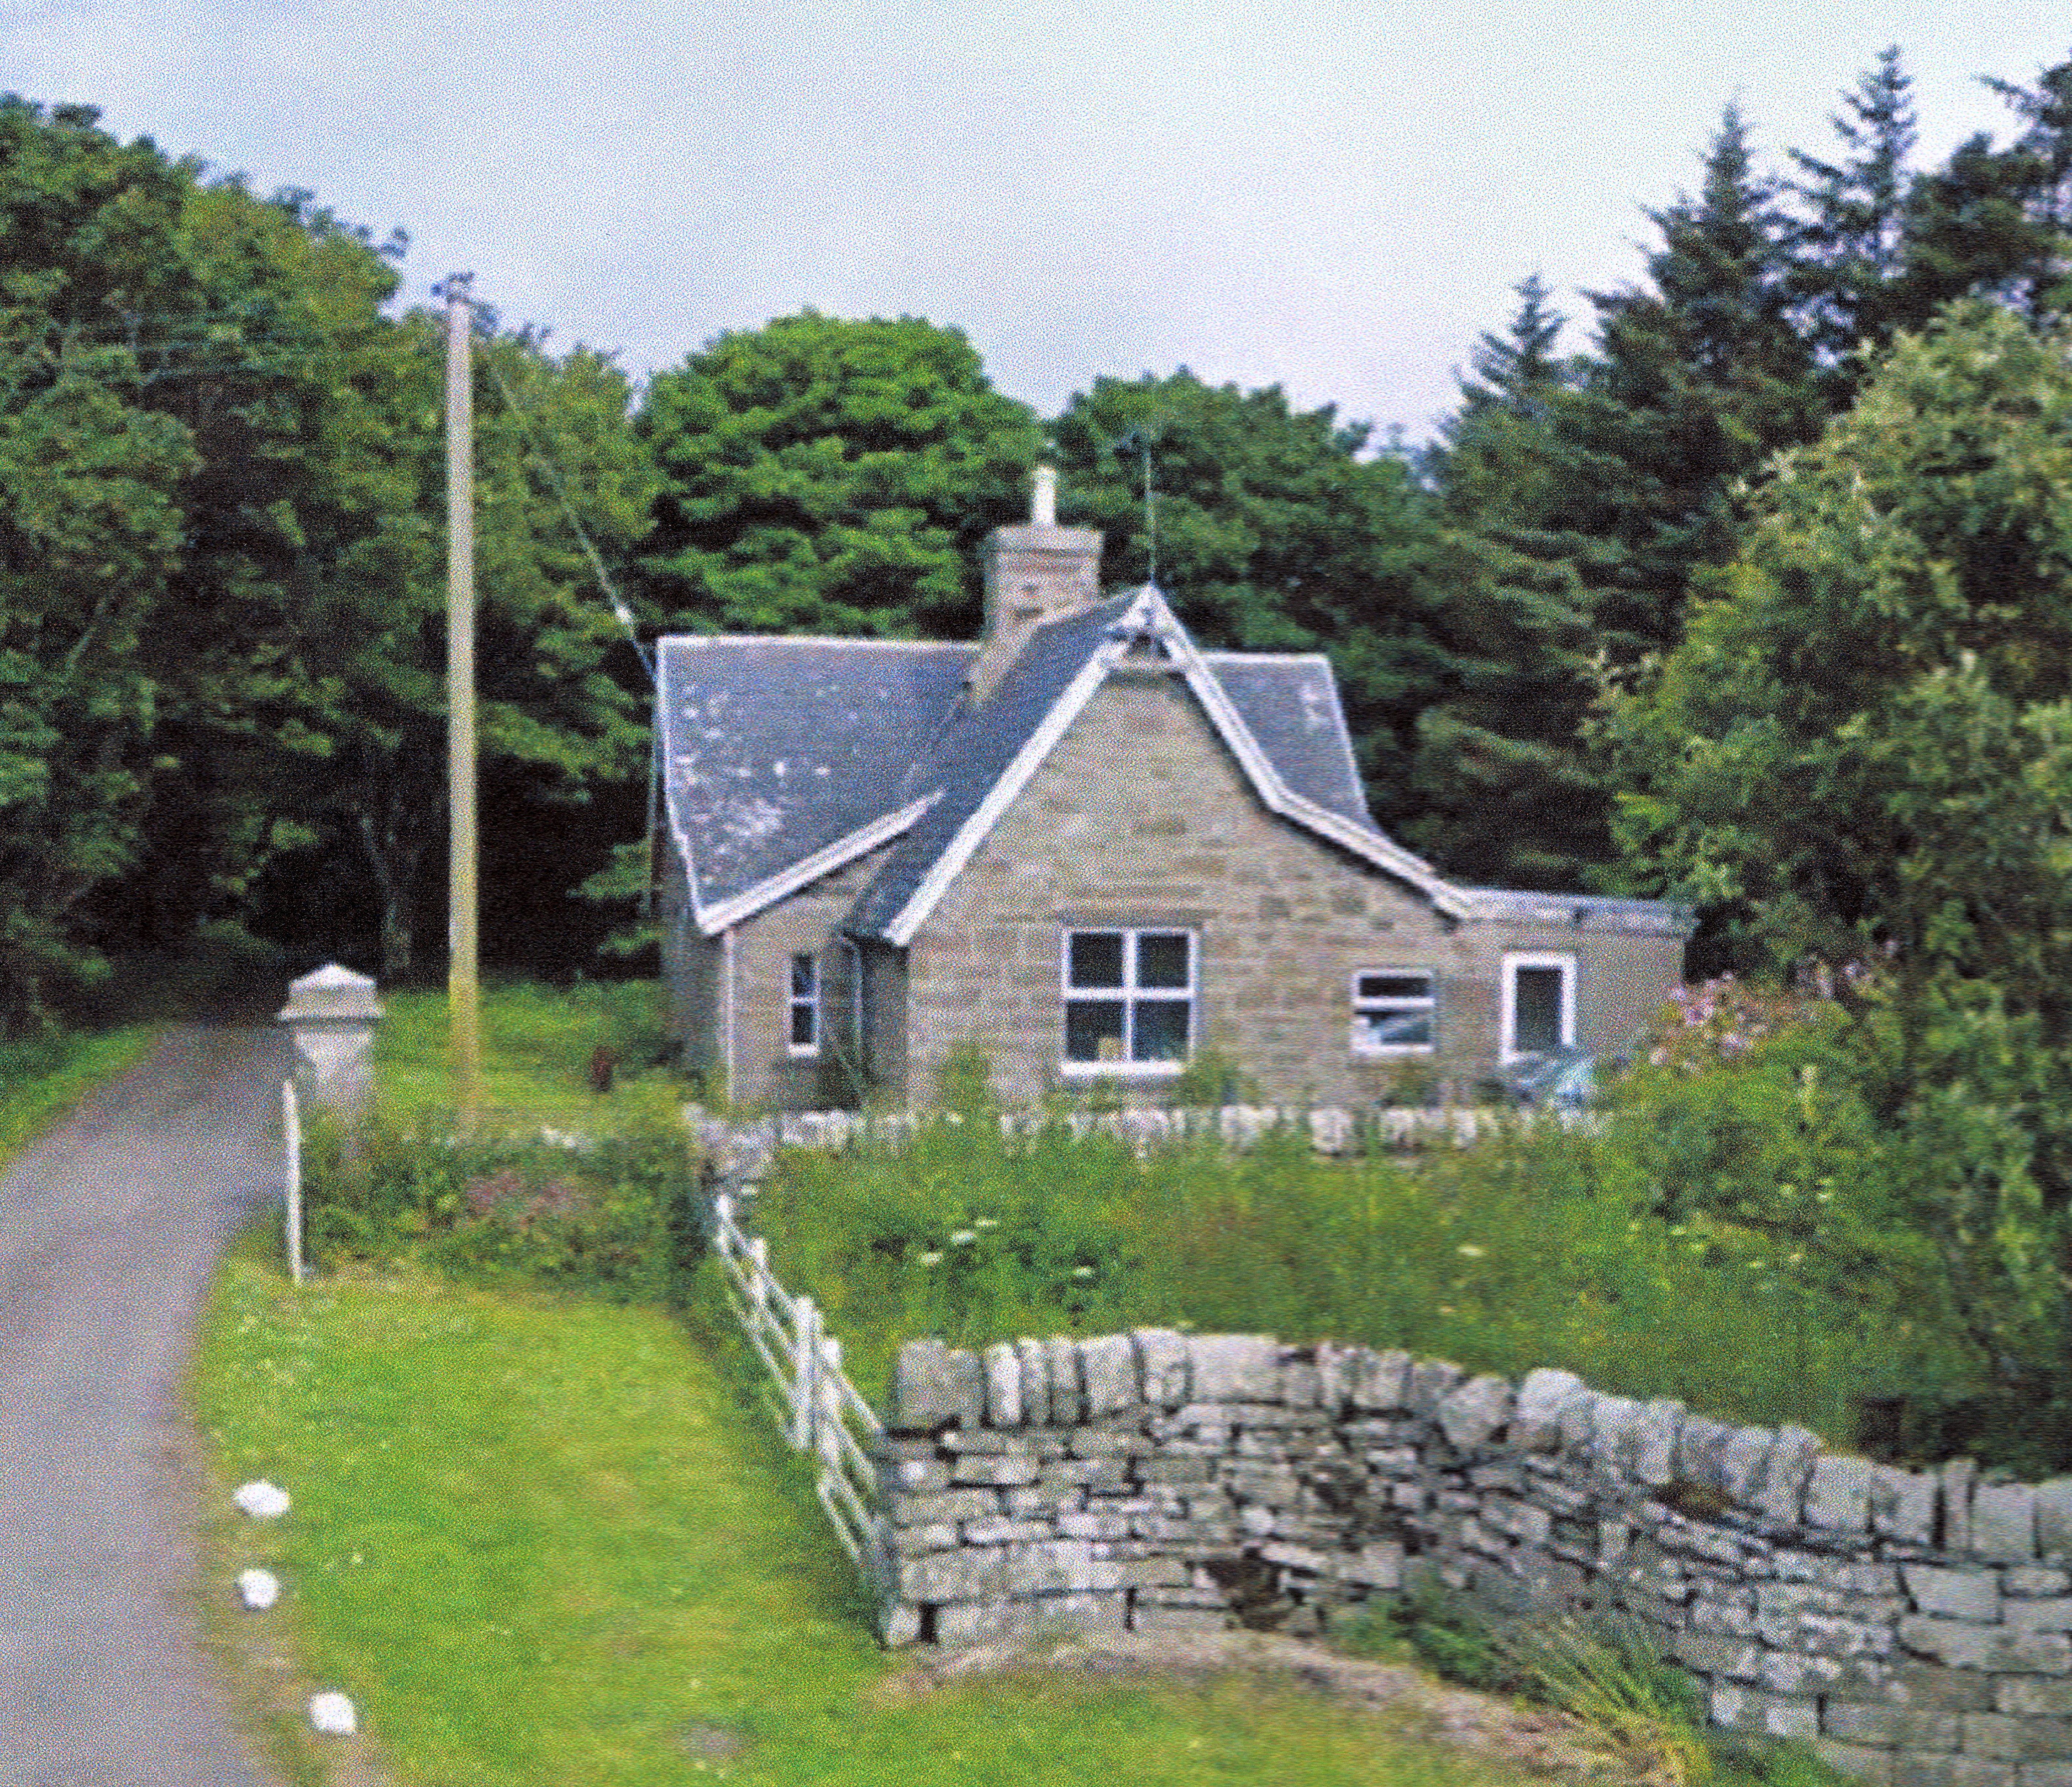 The Lodge house on the NC500